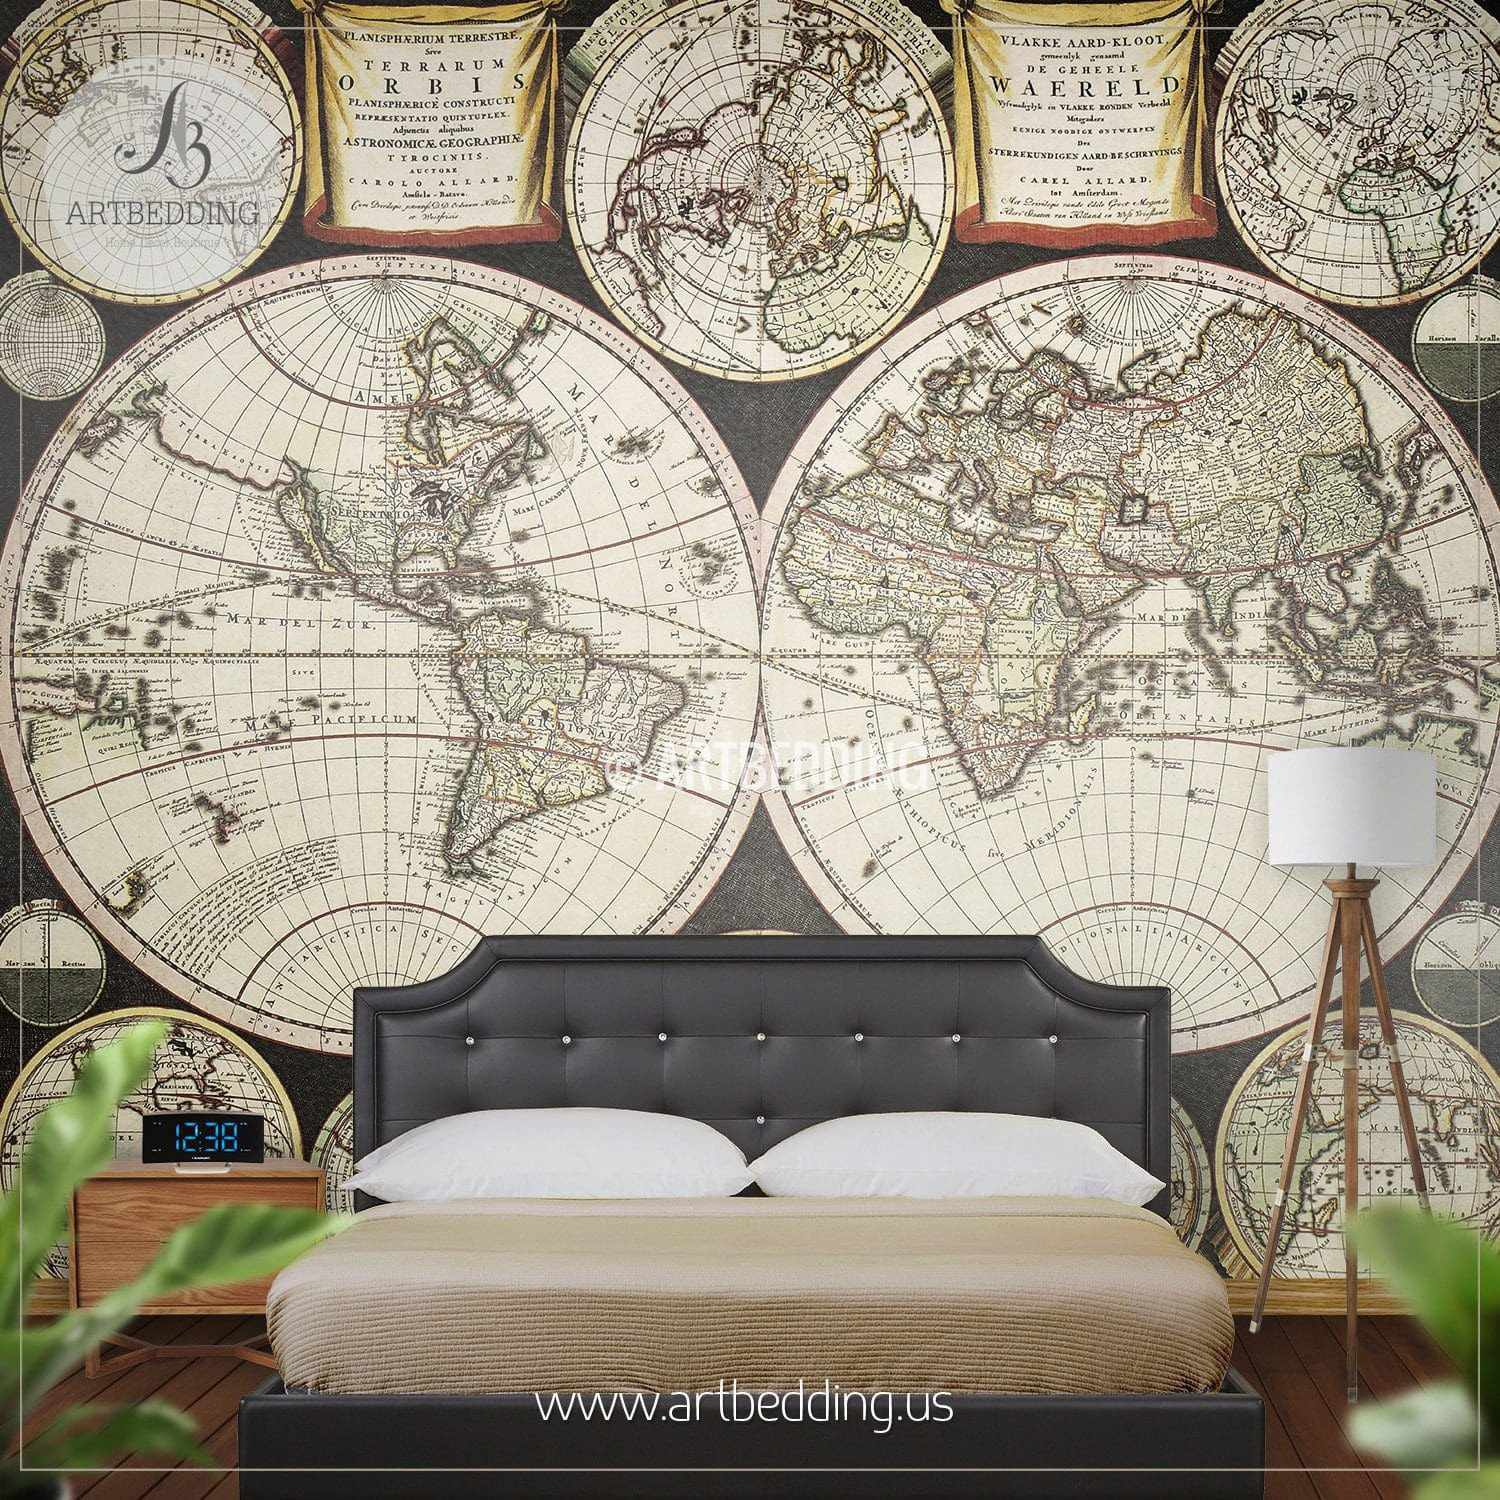 old double hemisphere world map from 1696 wall mural self adhesive peel stick photo